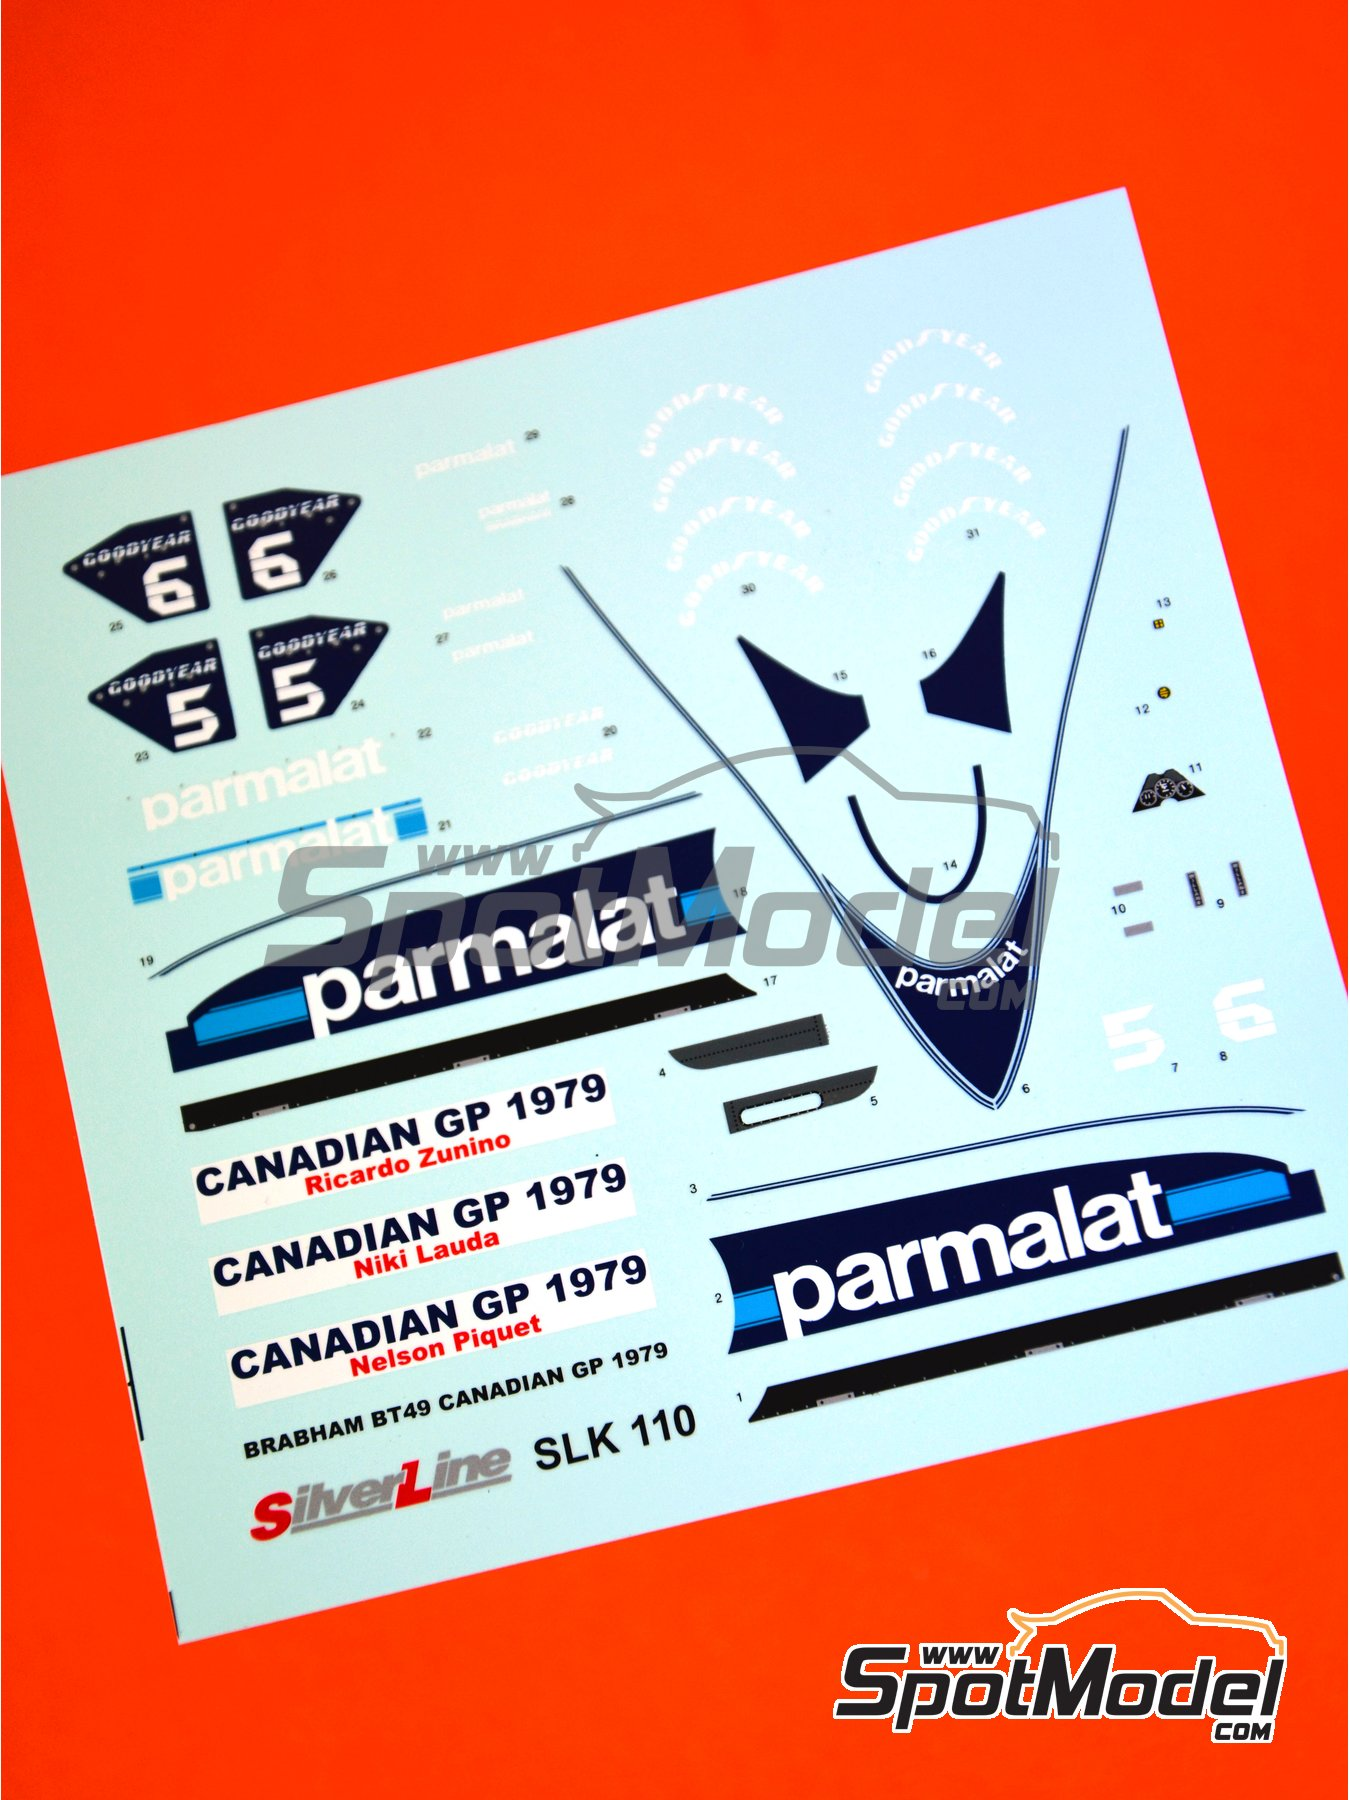 Brabham Ford BT49 Parmalat - Canadian Grand Prix 1979 | Marking / livery in 1/43 scale manufactured by Tameo Kits (ref.DK-SLK110) image